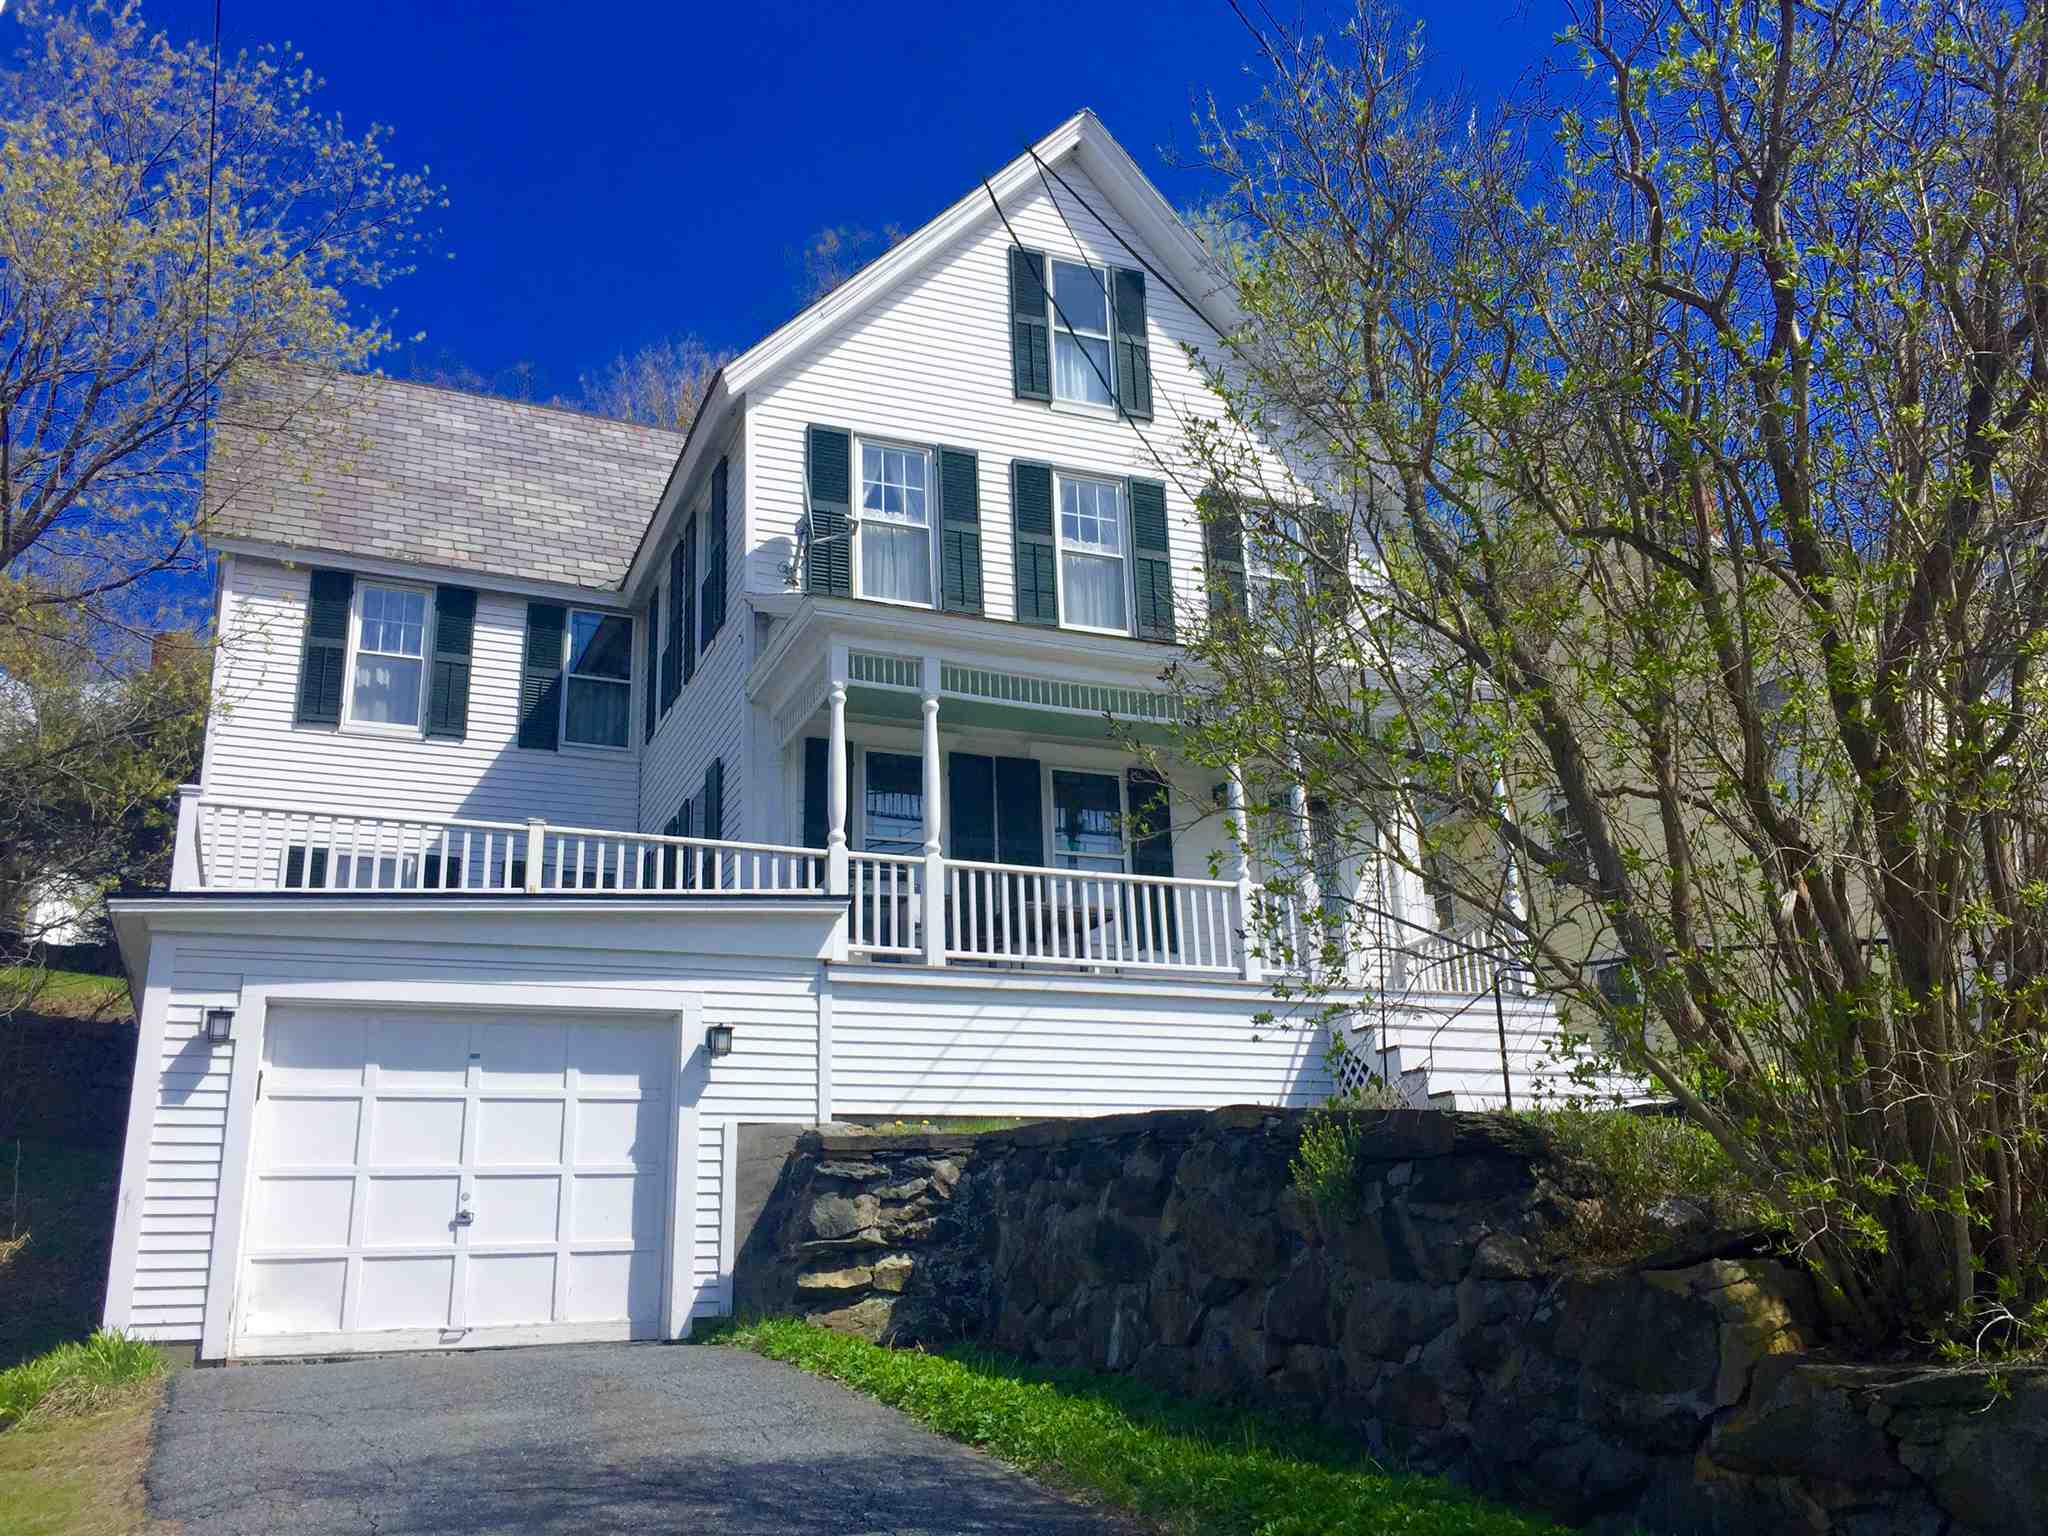 MLS 4807011: 2 High Street, Woodstock VT